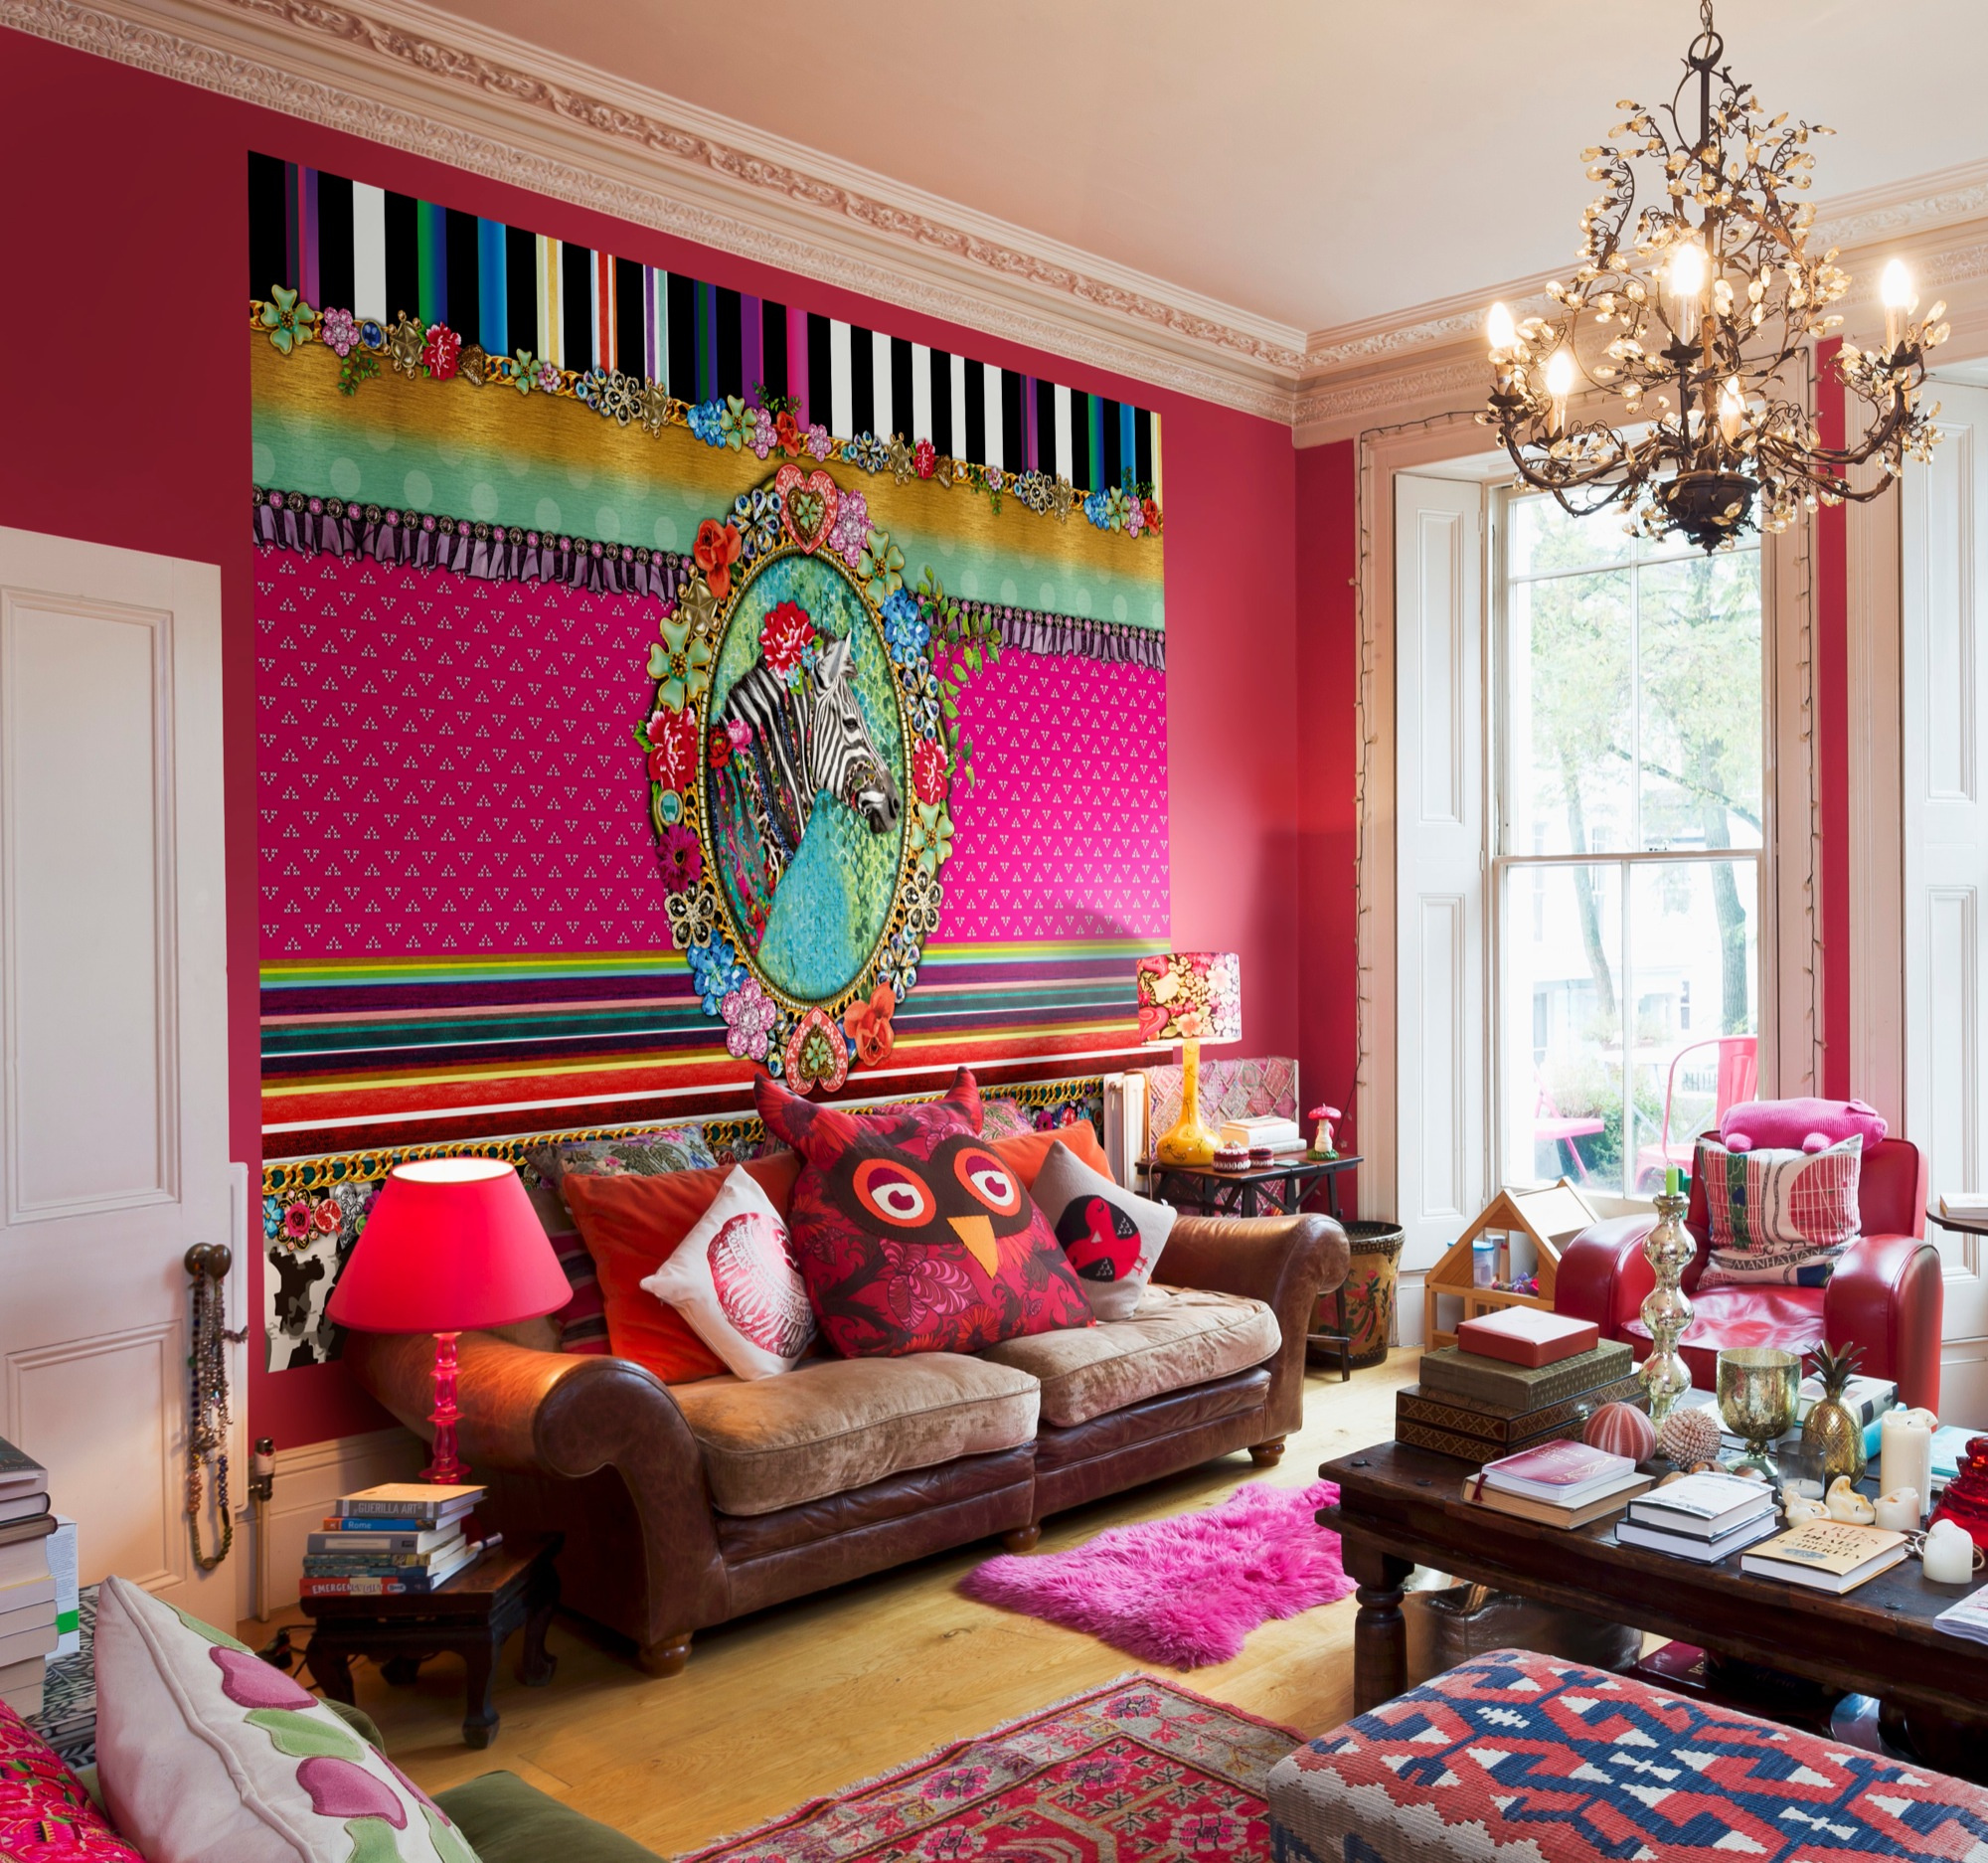 colours galore: the bohemian interior decor style!